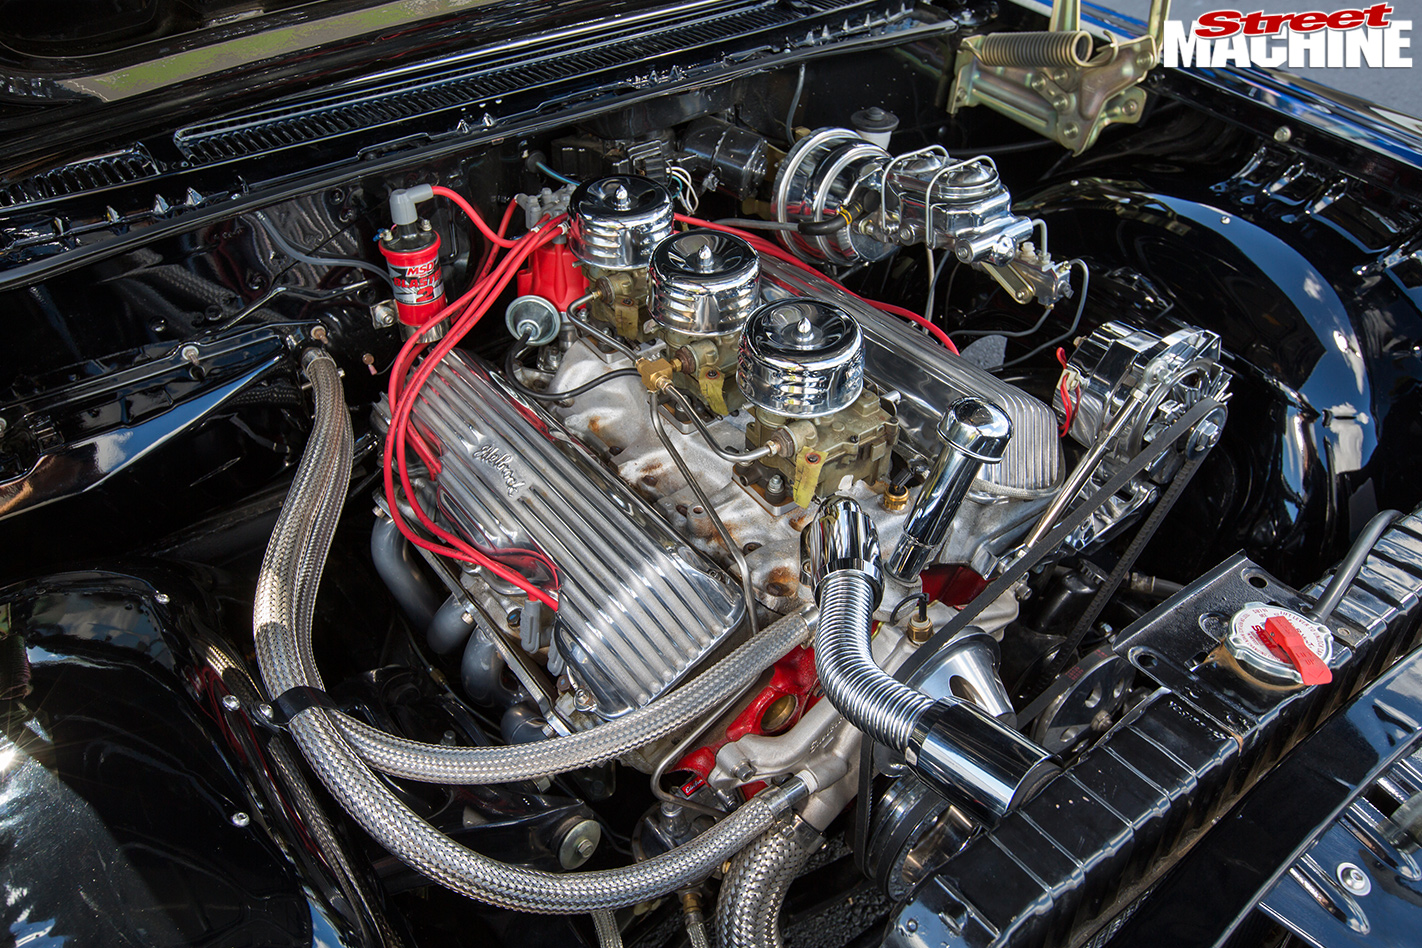 Chevrolet -impala -engine -bay